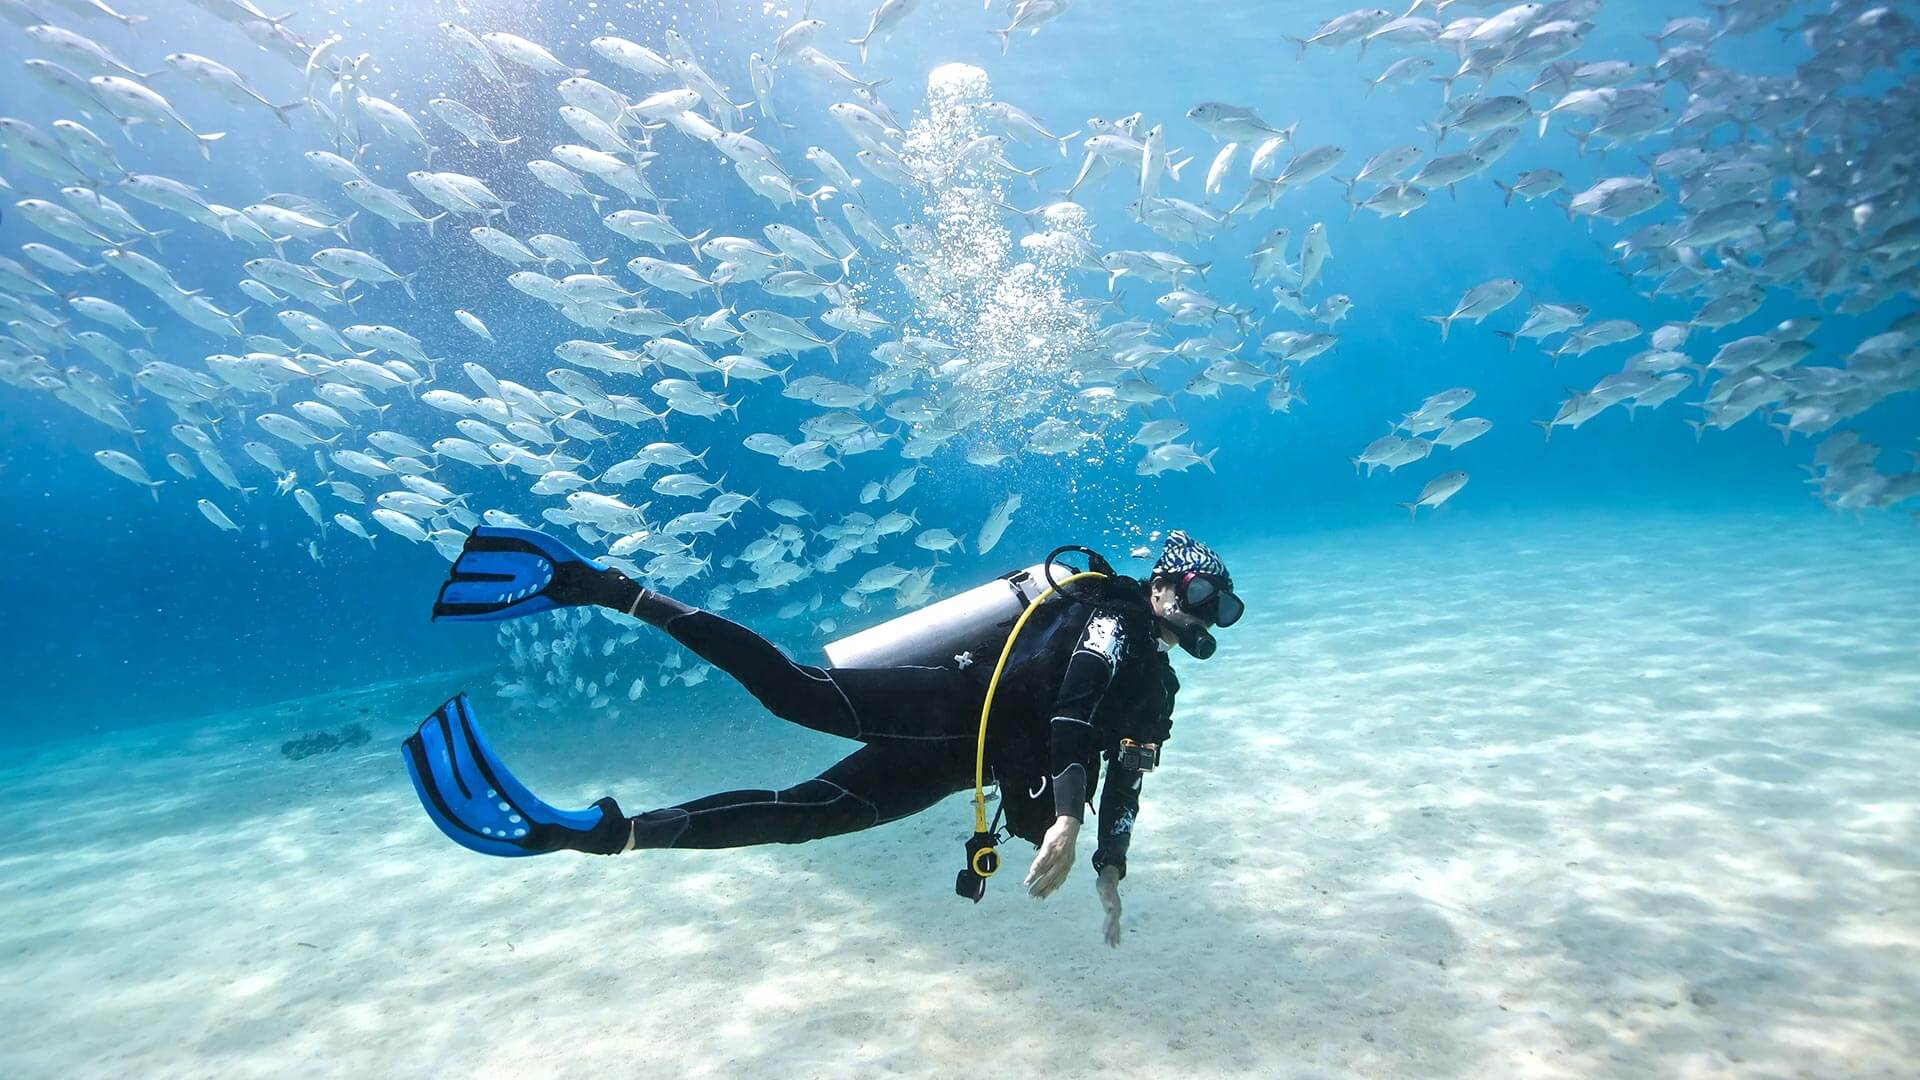 16 Best Things To Do In Phuket, Thailand / Scuba Diving